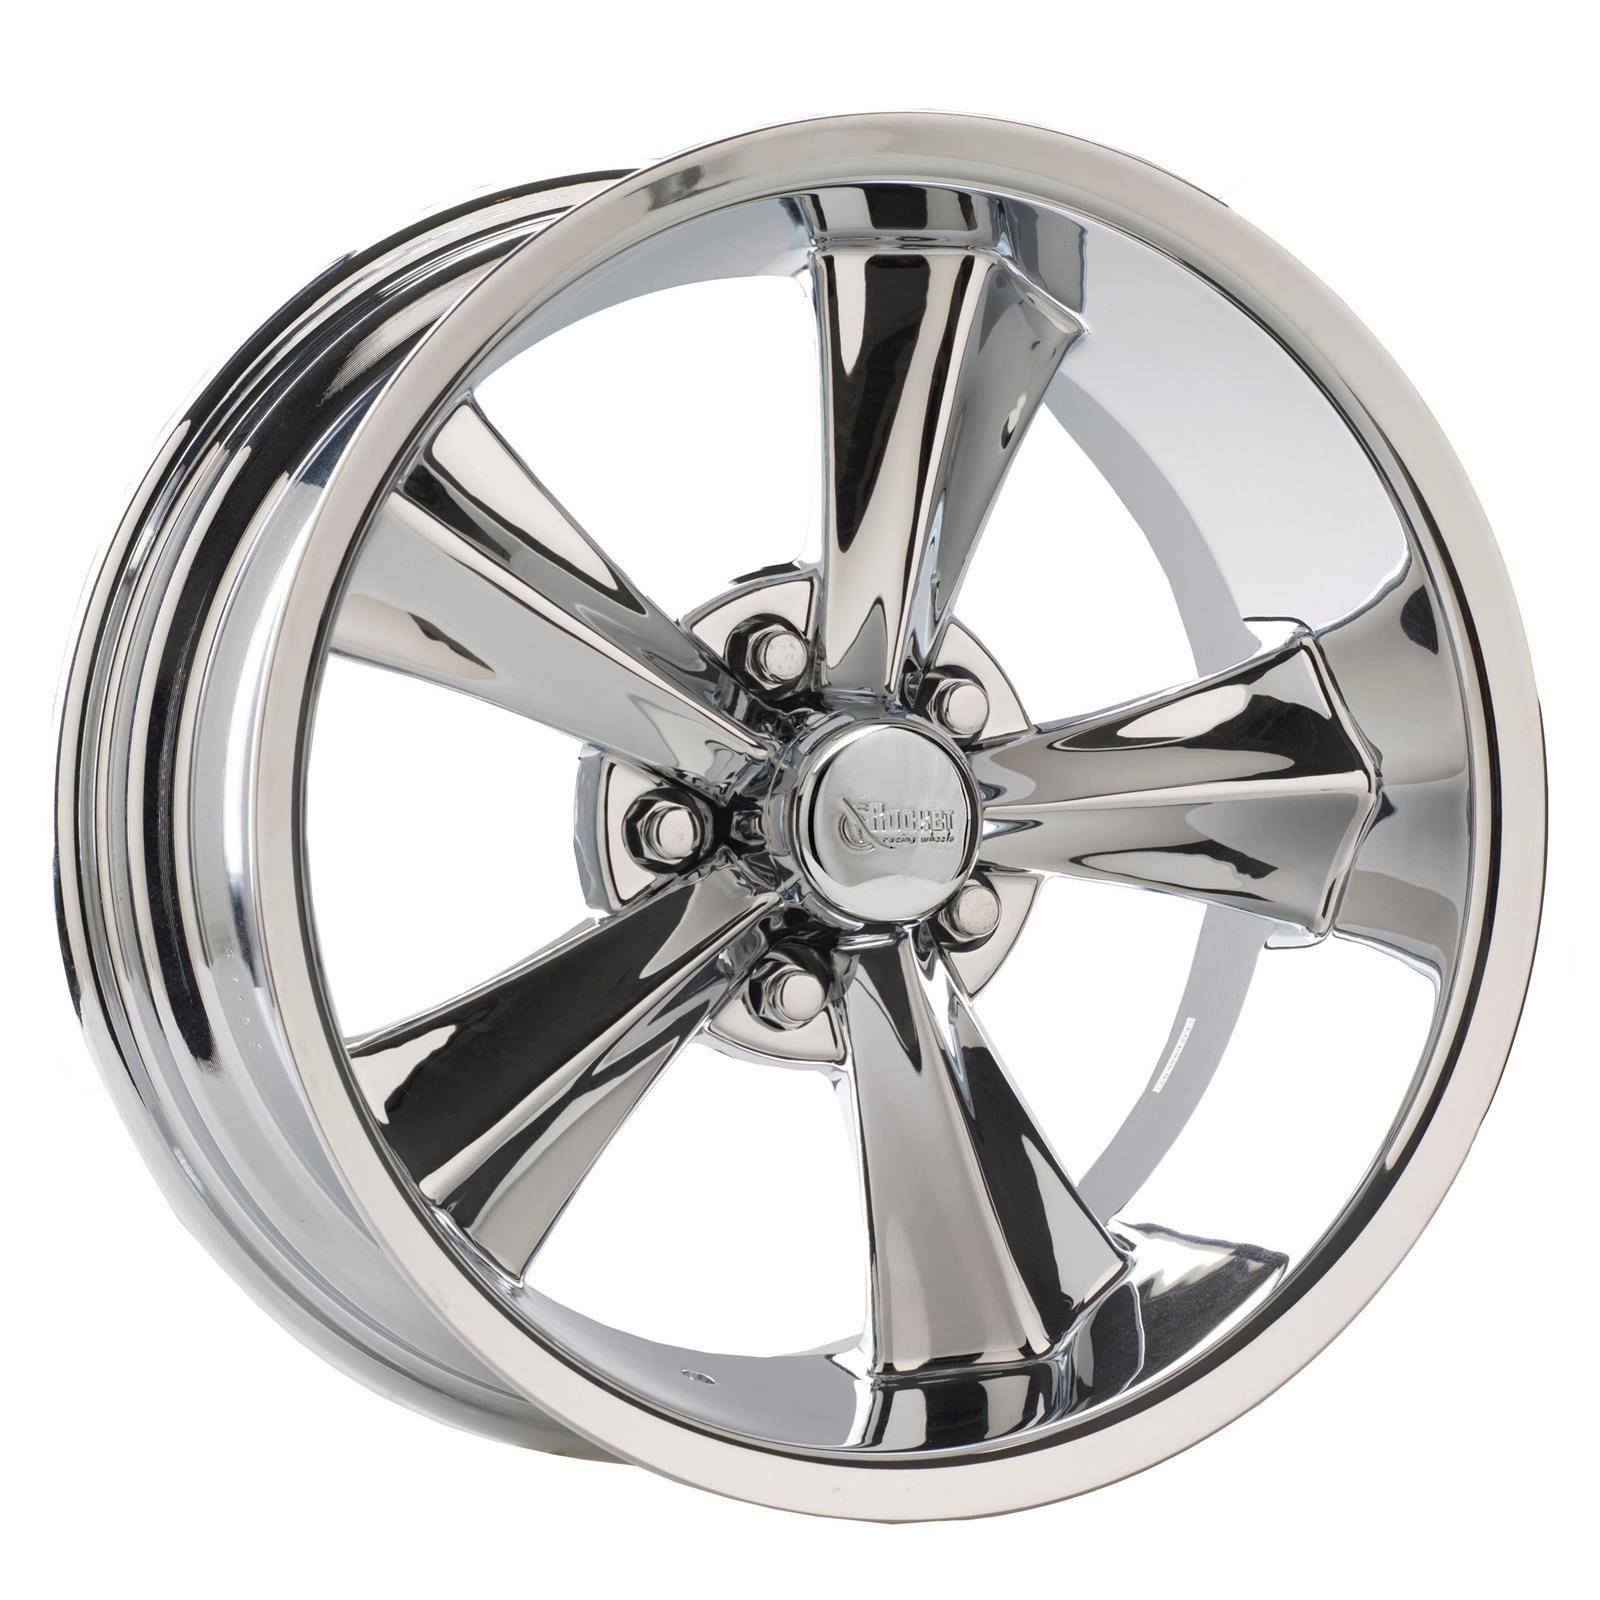 Rocket Racing R14-786145 Booster  17x8 Wheel, 5x4-3/4, 4-1/2 BS